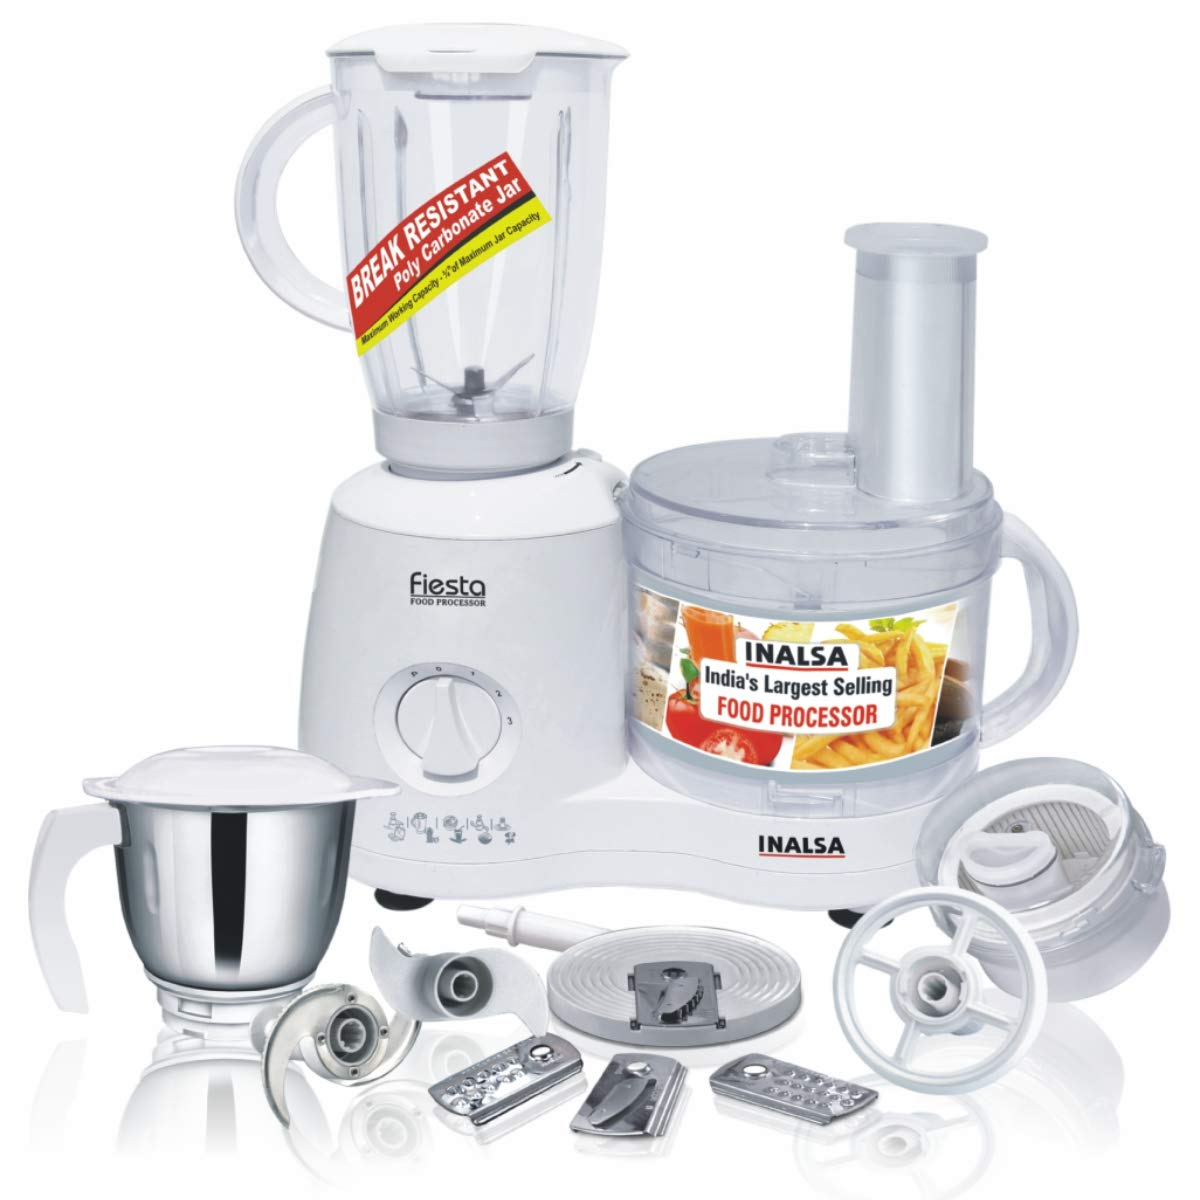 Inalsa Food Processor Fiesta 650-Watt with Break Resistant Processing Bowl Blender or Food Processor